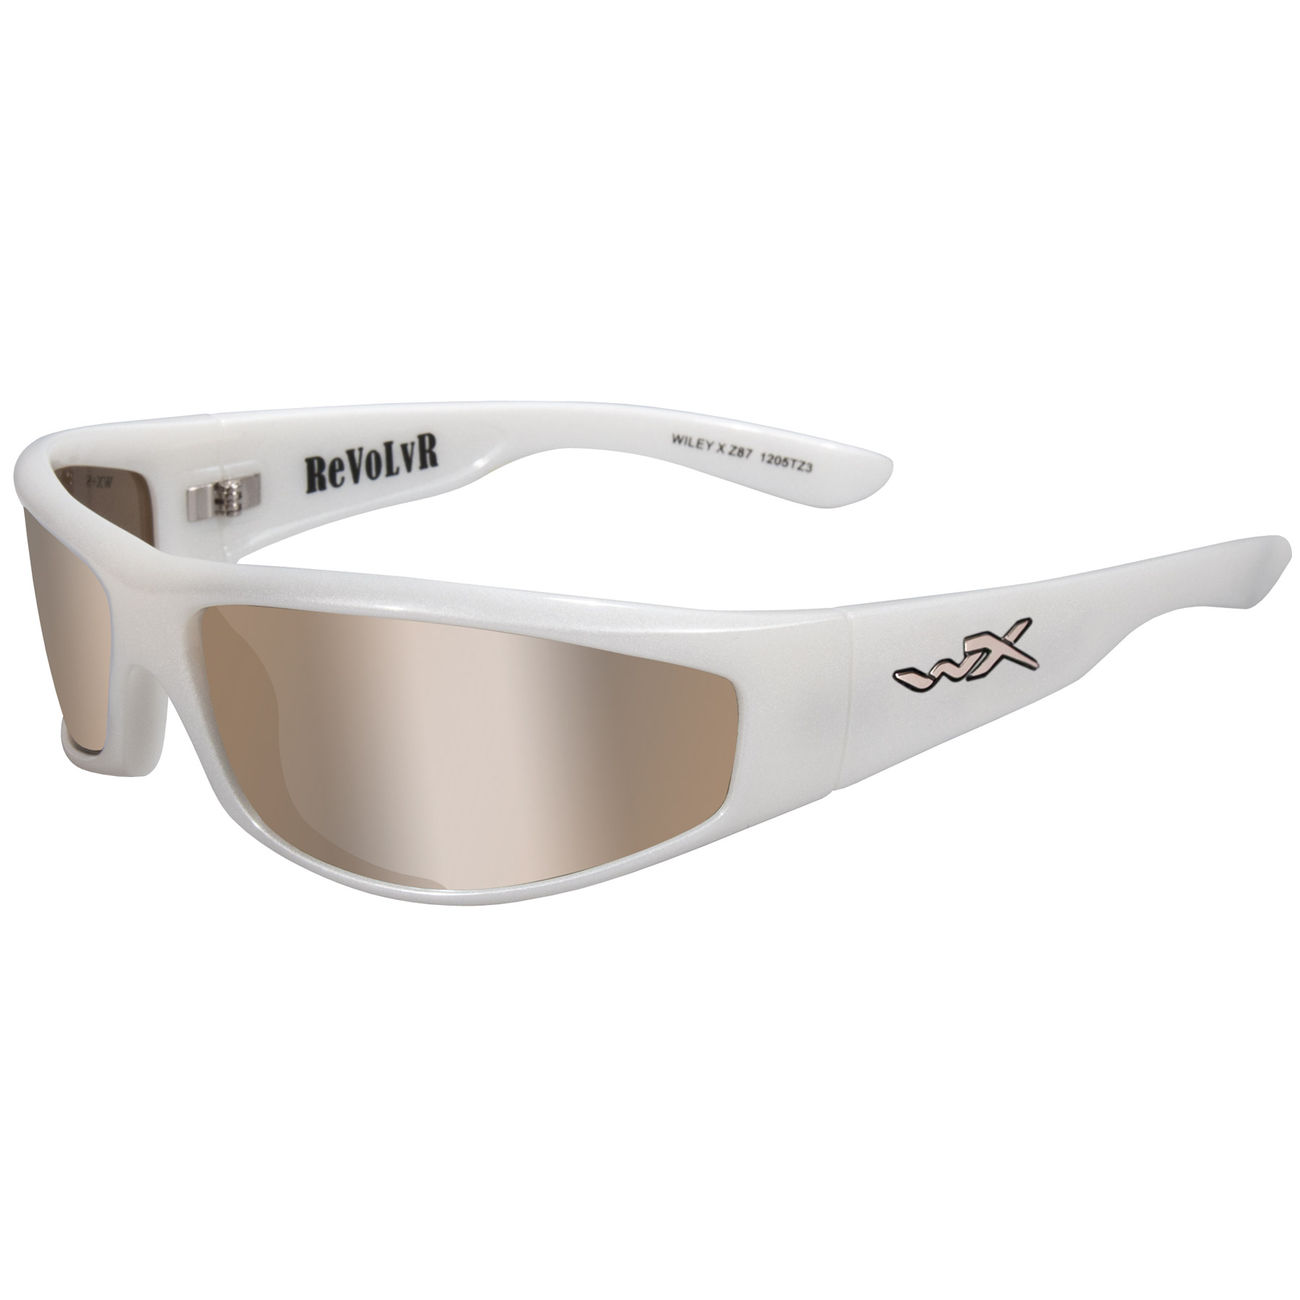 Wiley X Brile WX RevolvR Pearl White/Silver Flash 0